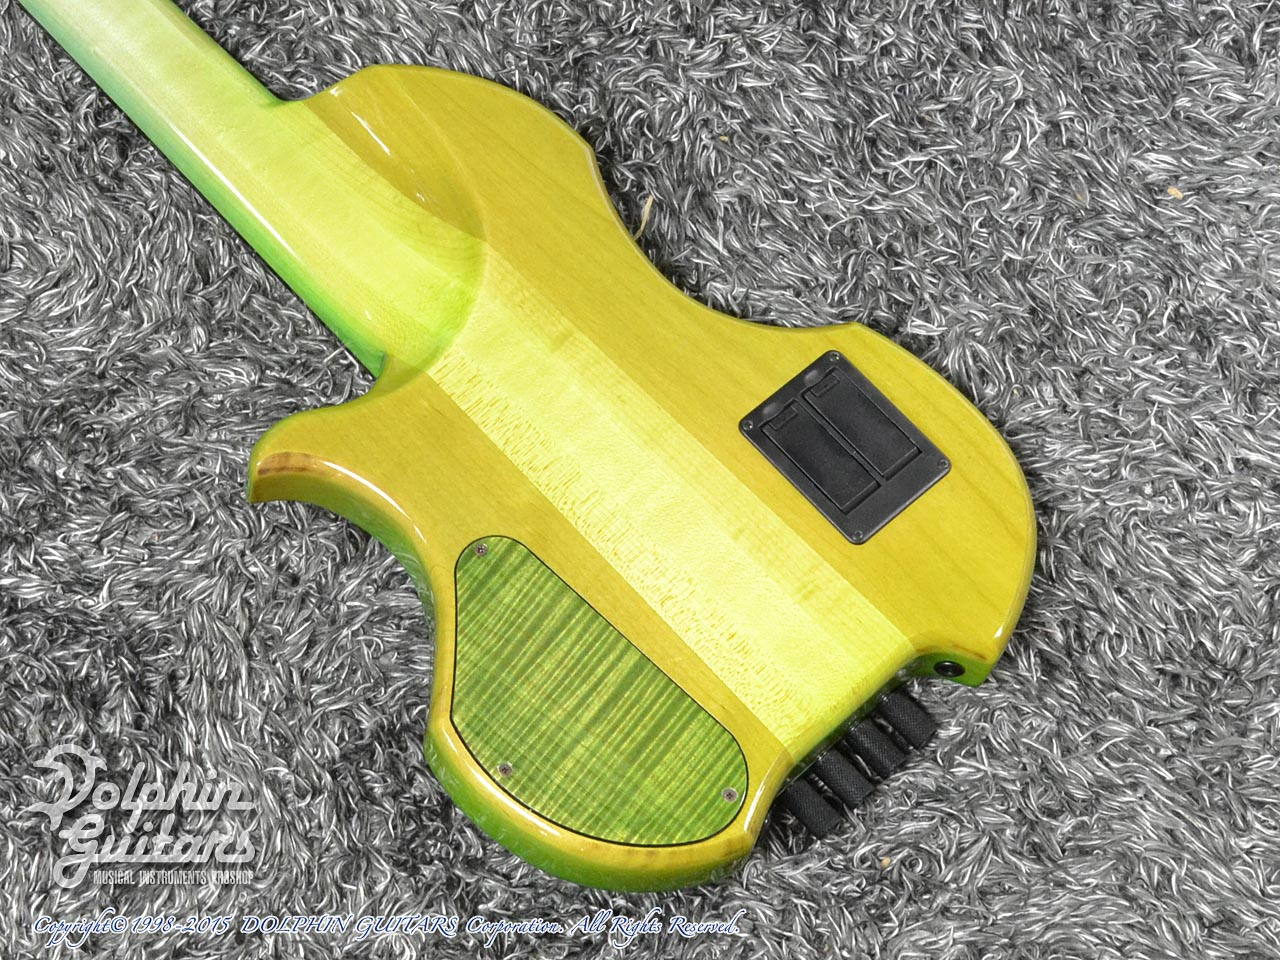 Charo's: CH-B4 Compact Headless Bass (Curly Maple & Alder) (Tropical Forest) (3)